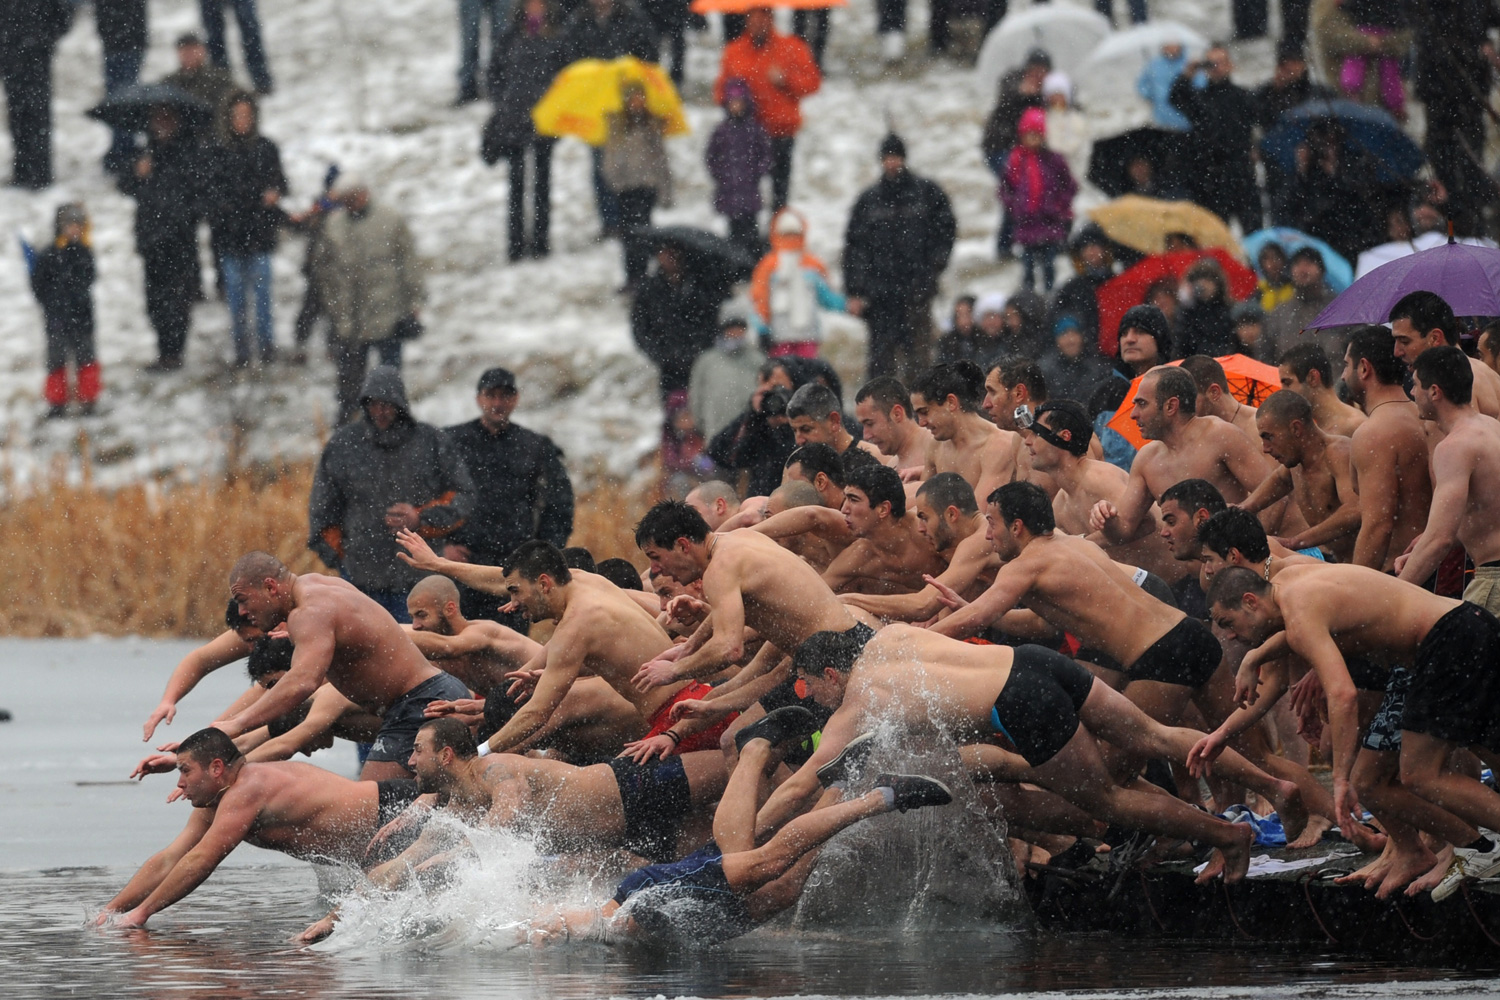 January 6, 2012. Bulgarians dive into icy water as they compete to catch a cross in the middle of a lake in Sofia as part of Epiphany Day celebrations. It is believed that the man who is the first to grab the cross, thrown into the water by an Eastern Orthodox priest, will be healthy throughout the year.